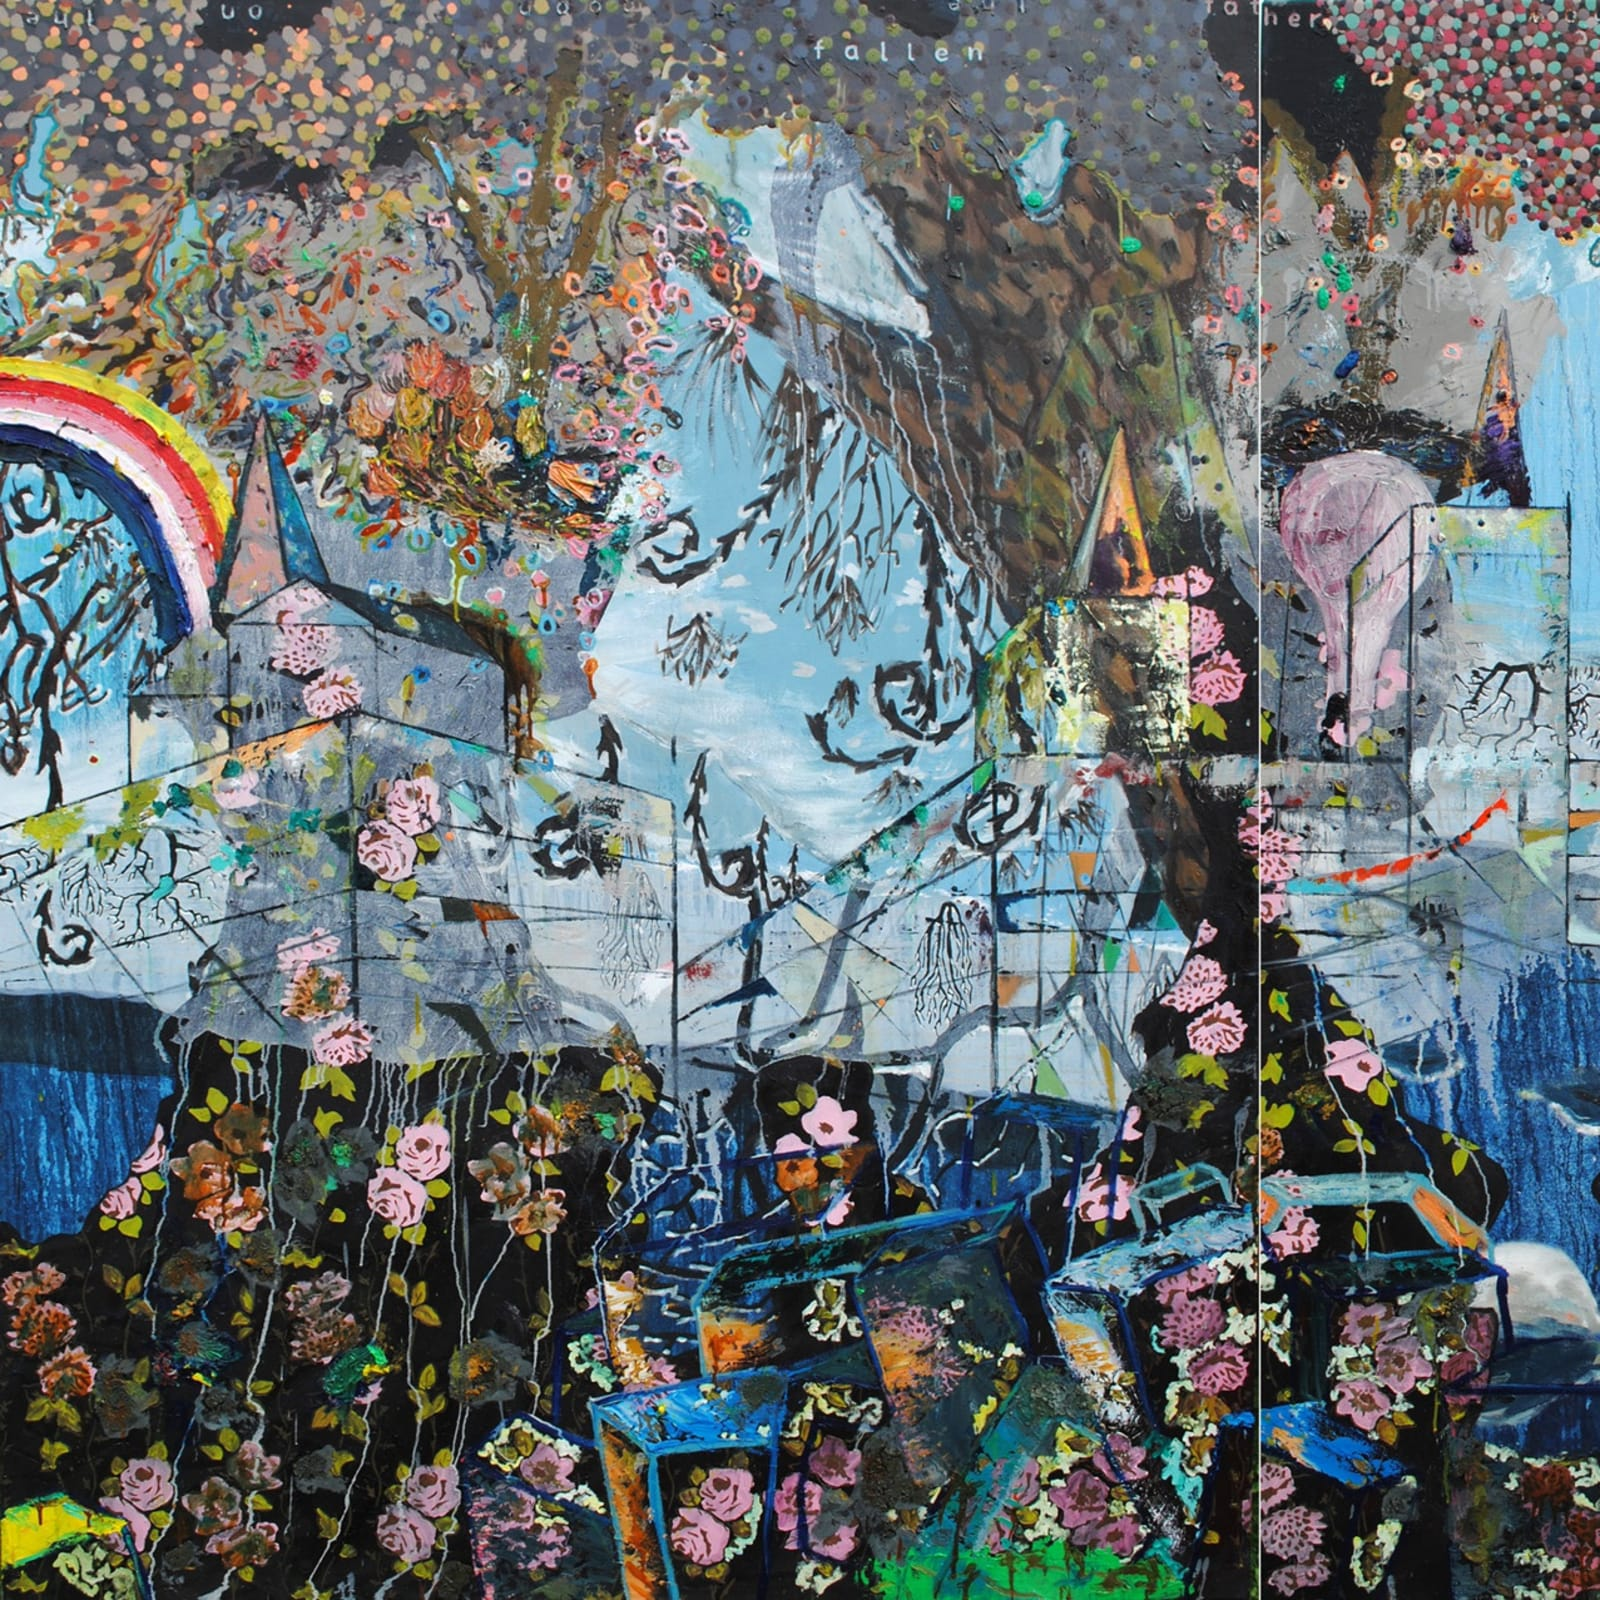 'Made of breath only', diptych, oil on canvas, 180 x 280cm (State Collection)